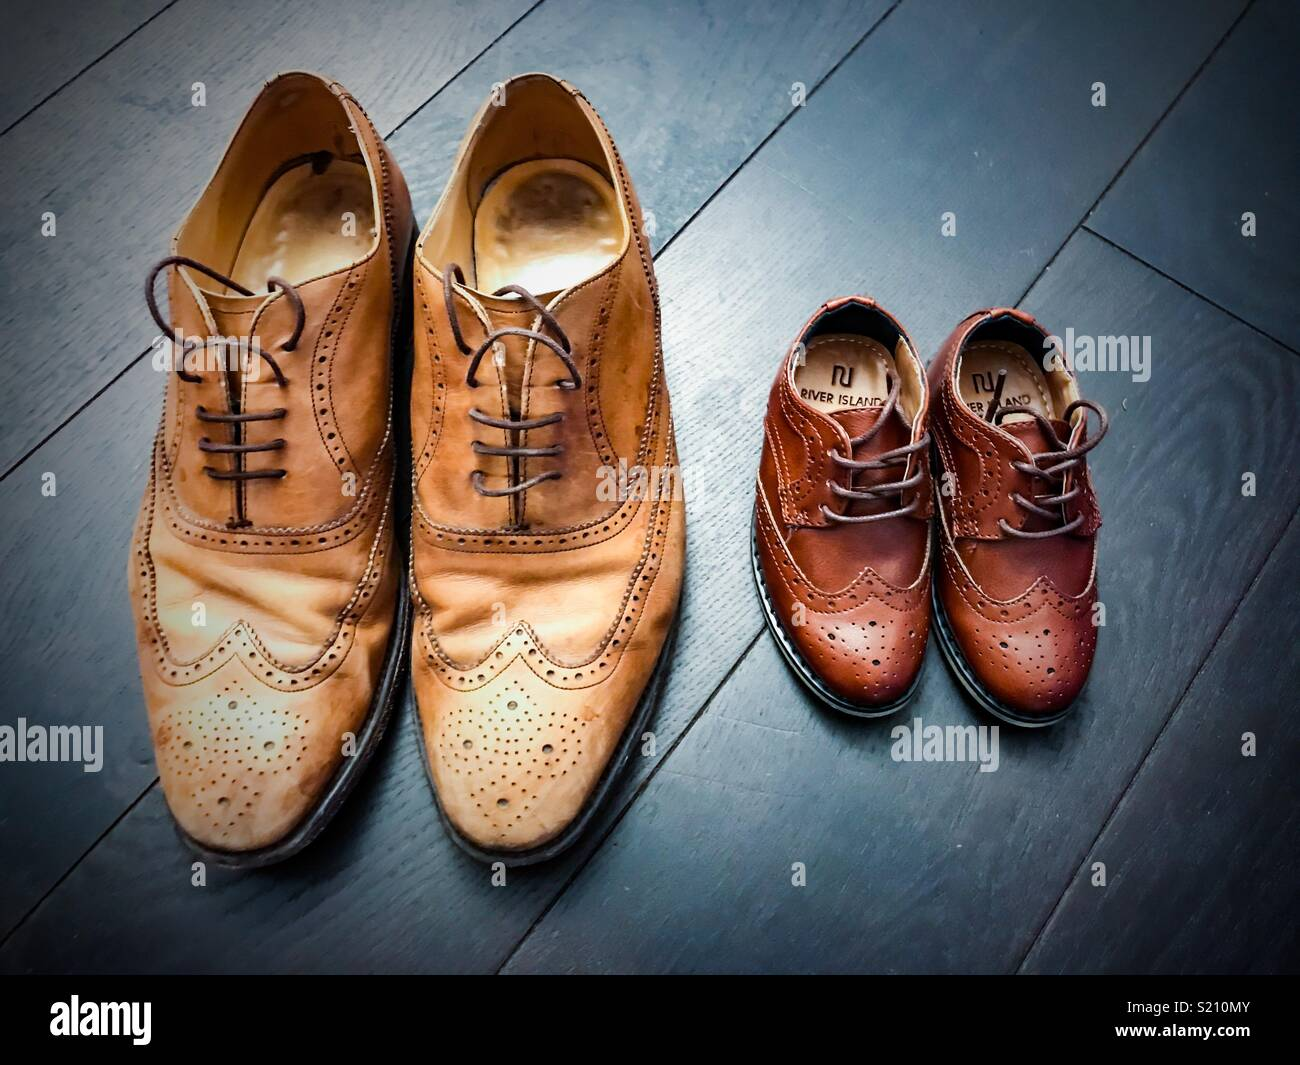 Like father like son. Kids shoes and dad shoes - Stock Image